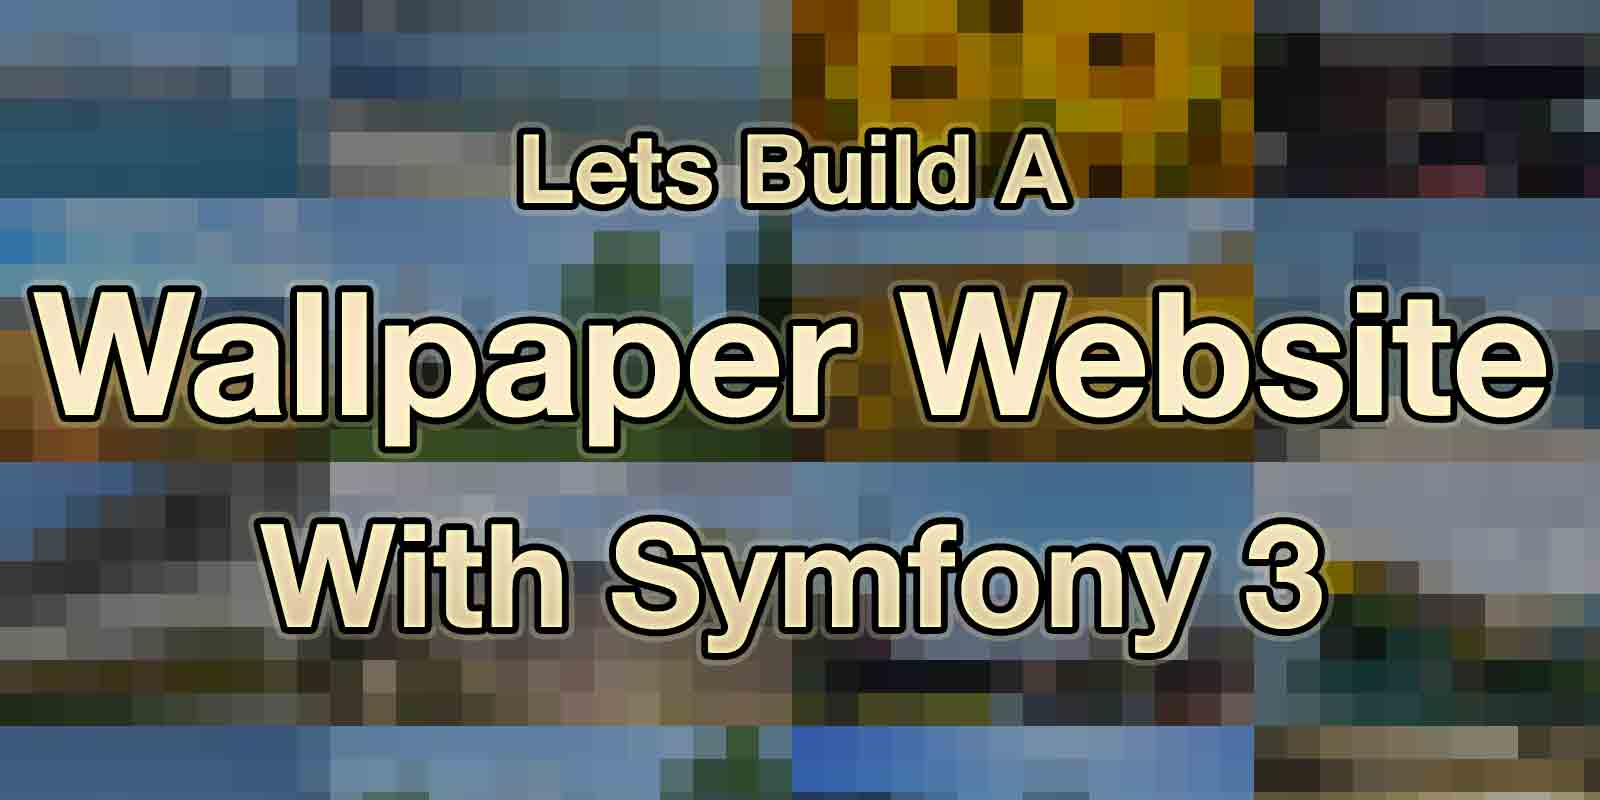 Let's Build A Wallpaper Website in Symfony 3